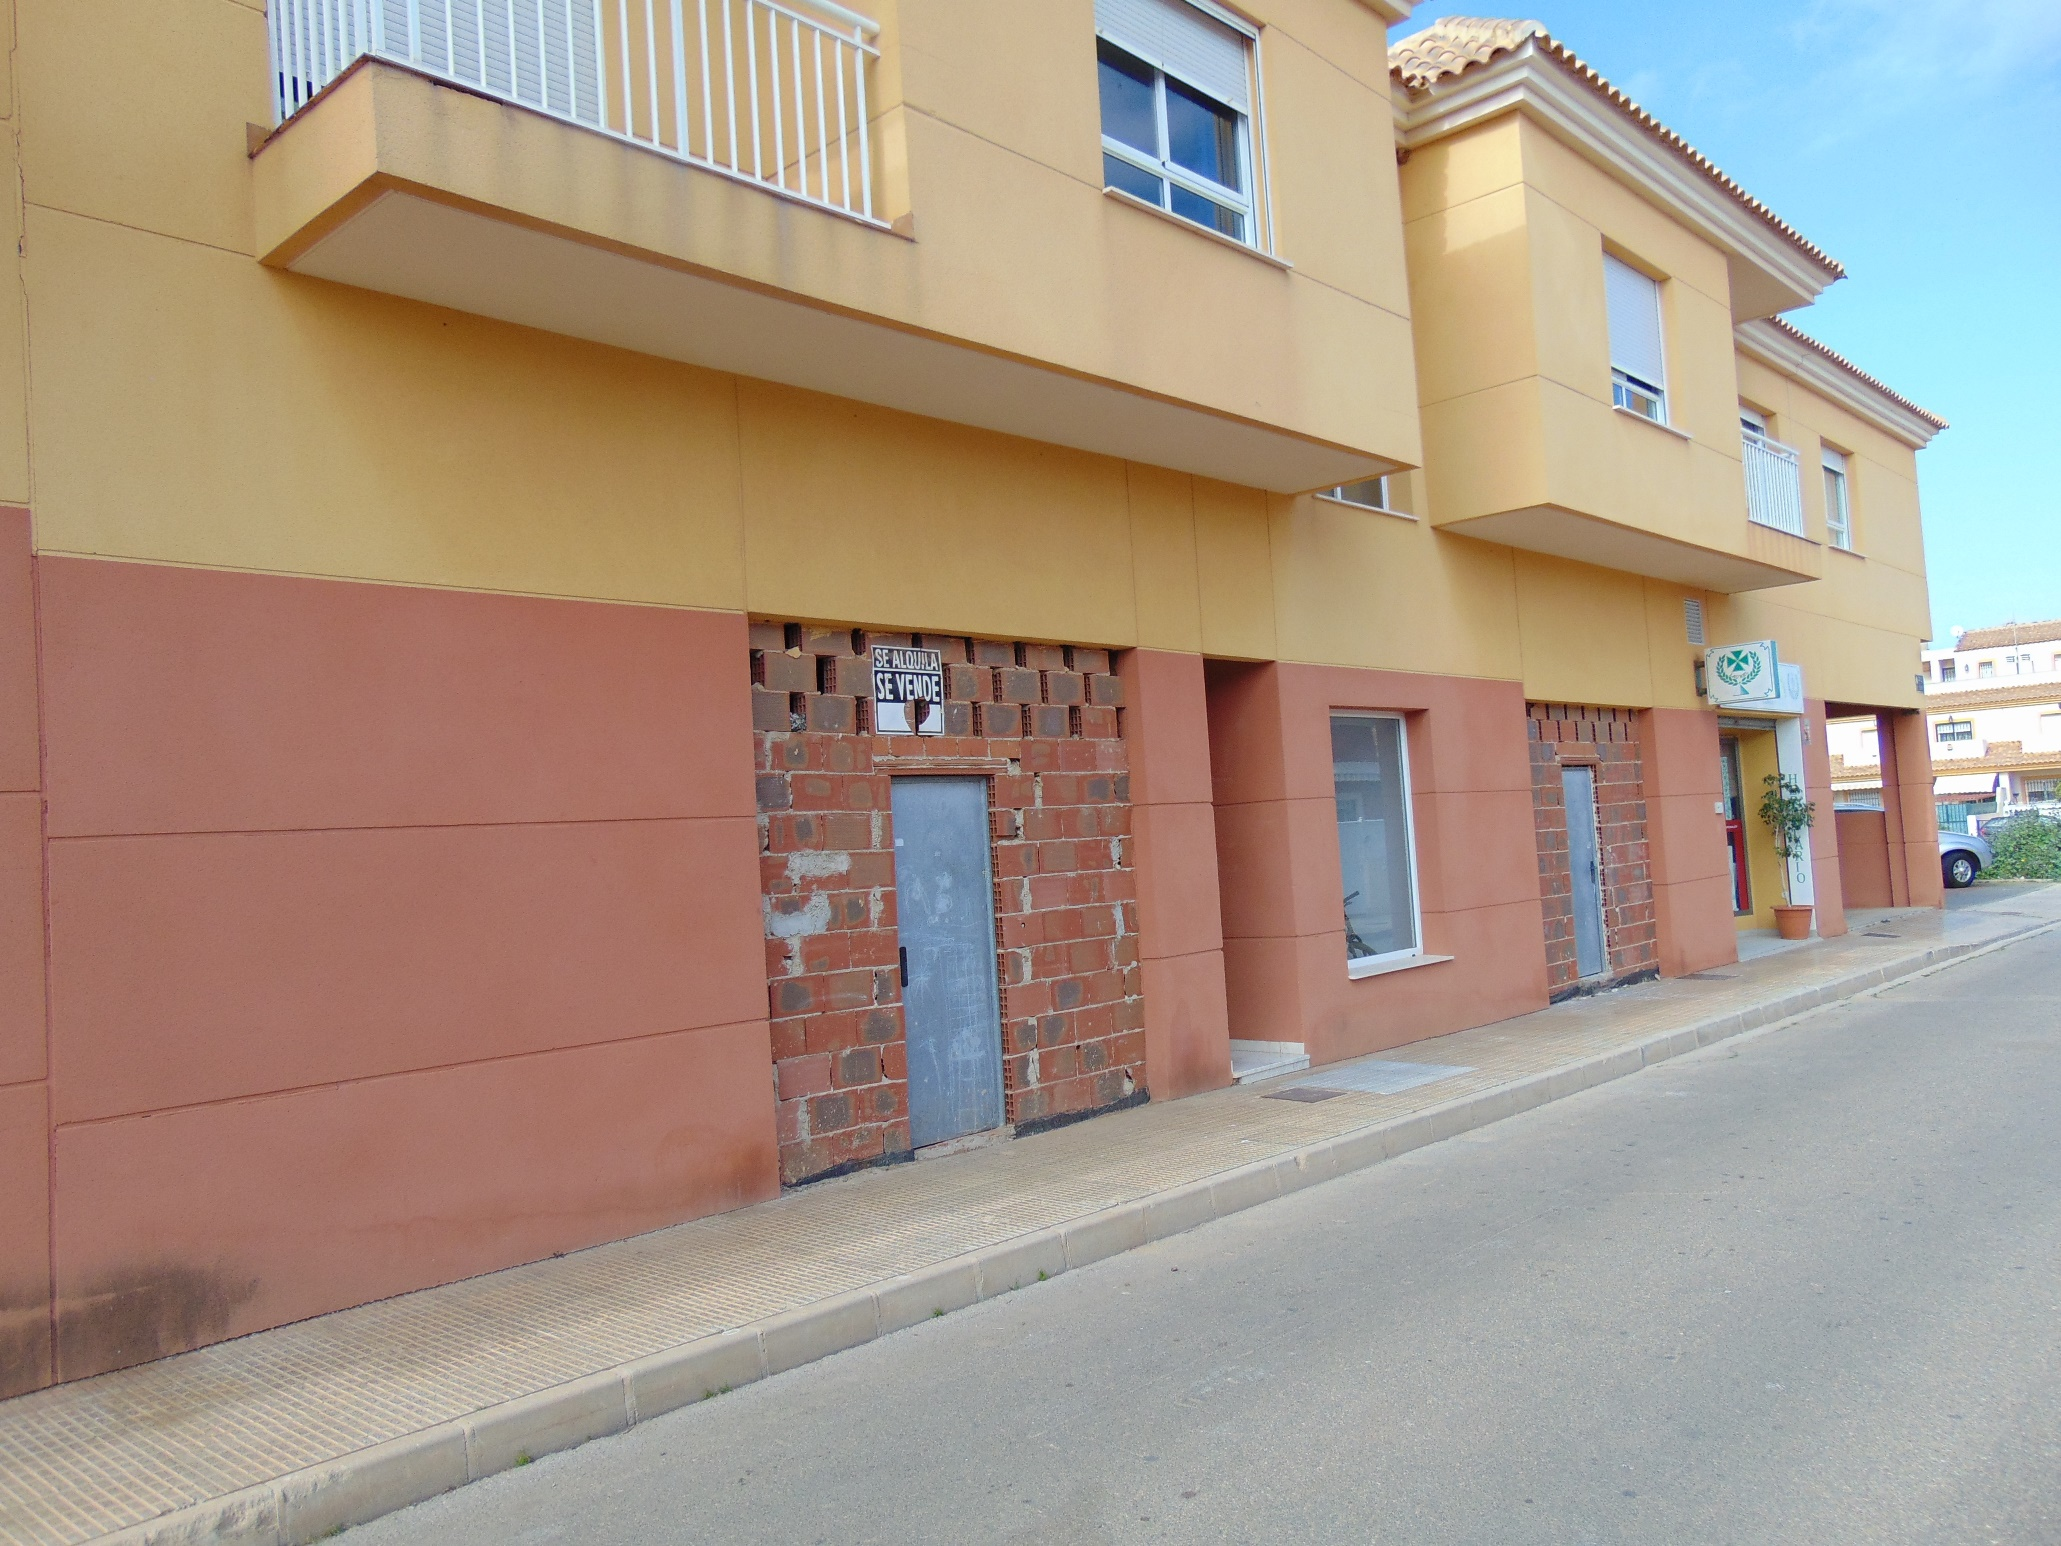 Propery For Sale in Cartagena, Spain image 0